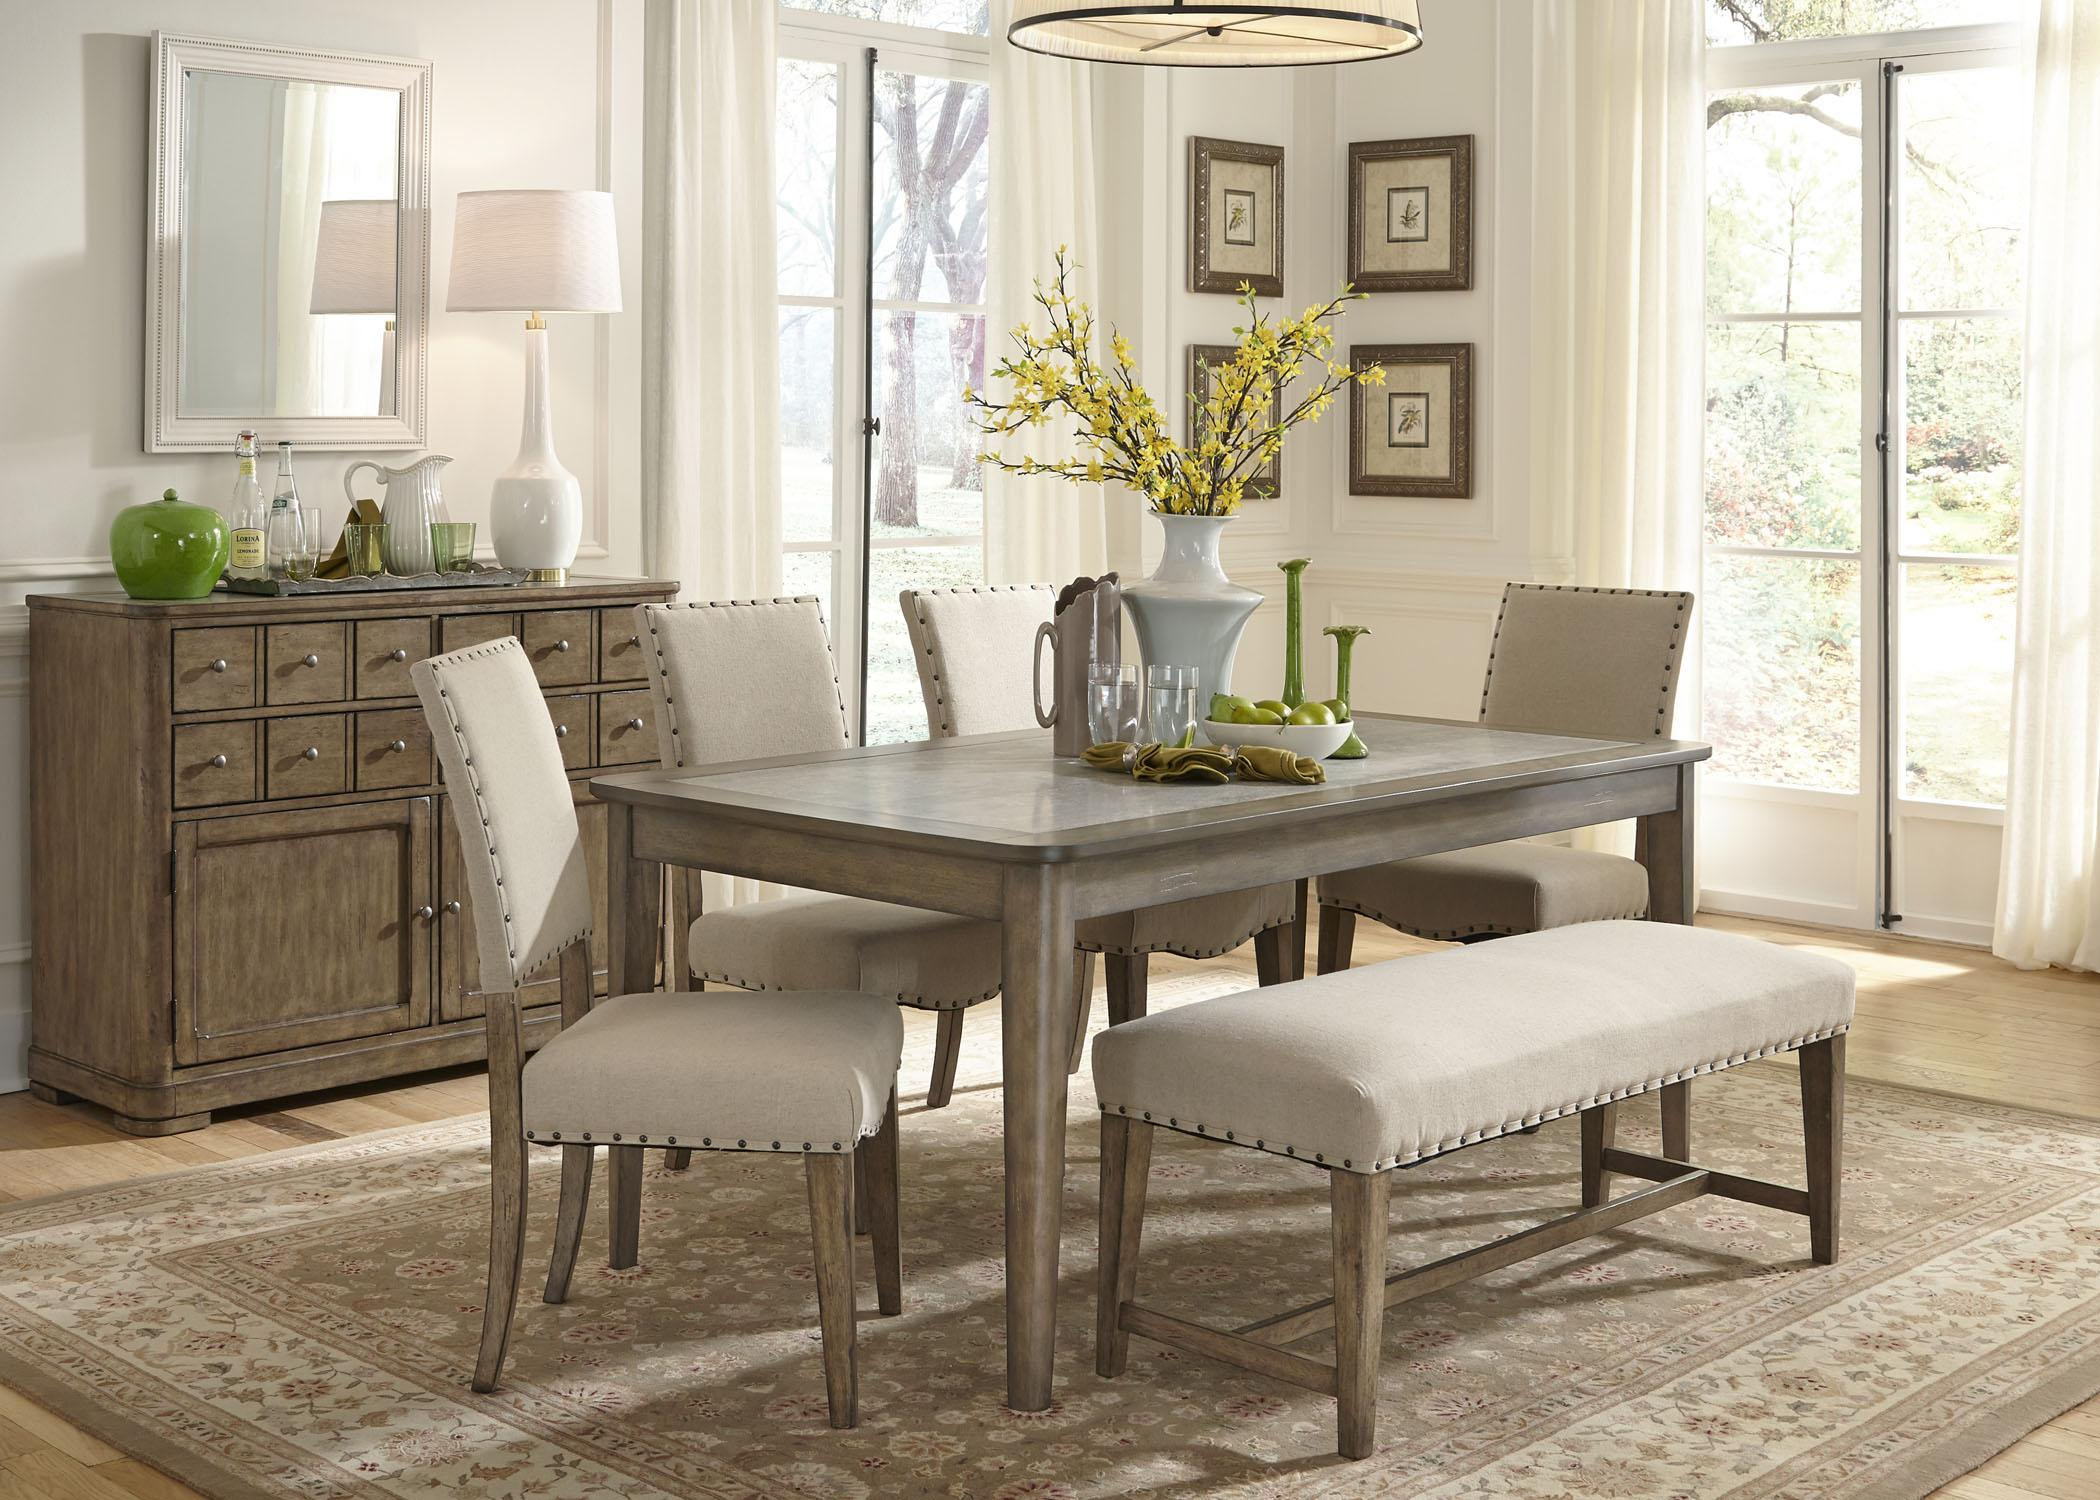 Weatherford rustic casual 6 piece dining table and chairs set with bench rotmans table chair set with bench worcester boston ma providence ri